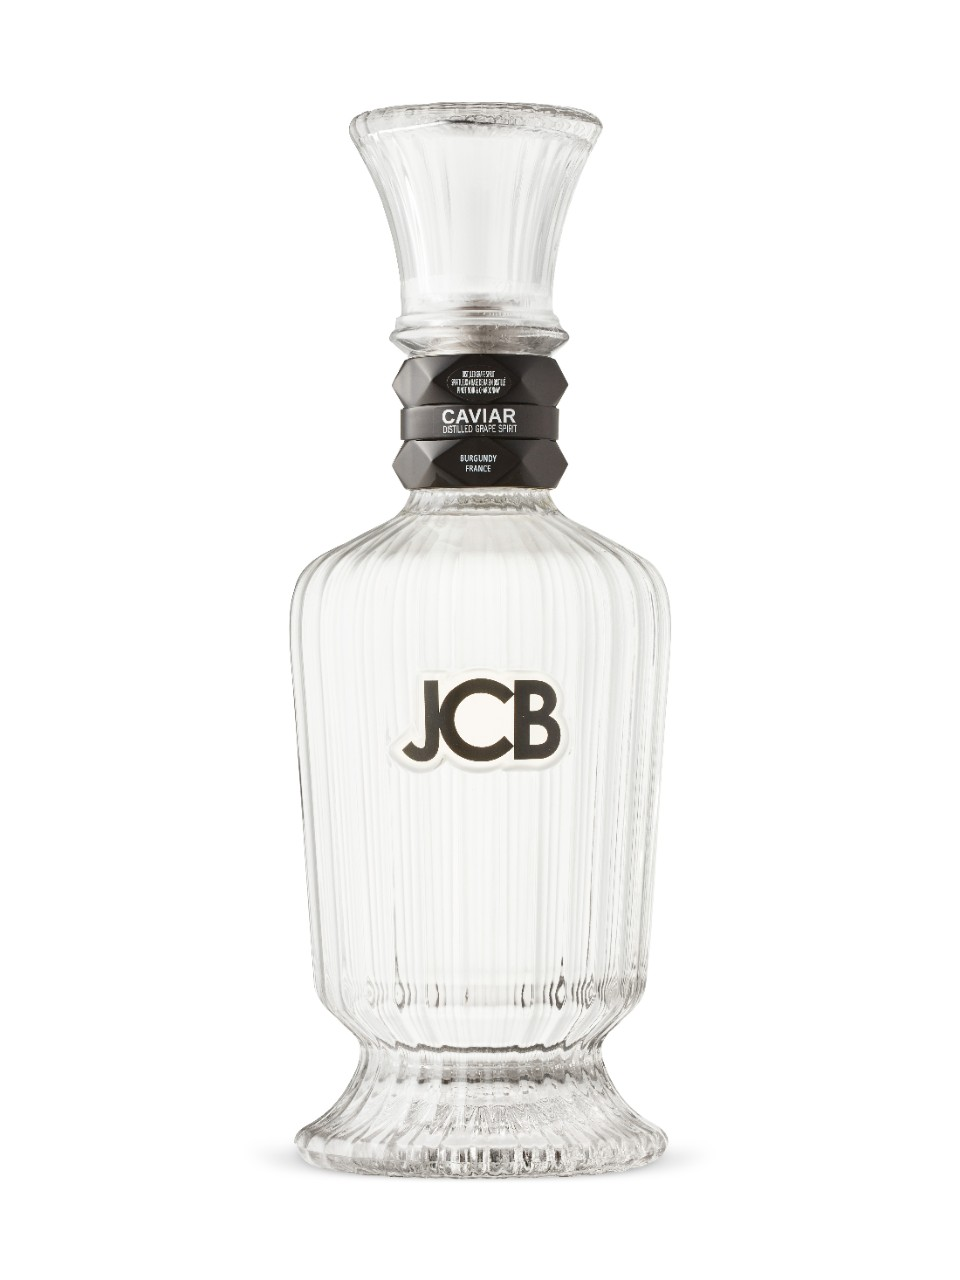 JCB Caviar Distilled Grape Spirit